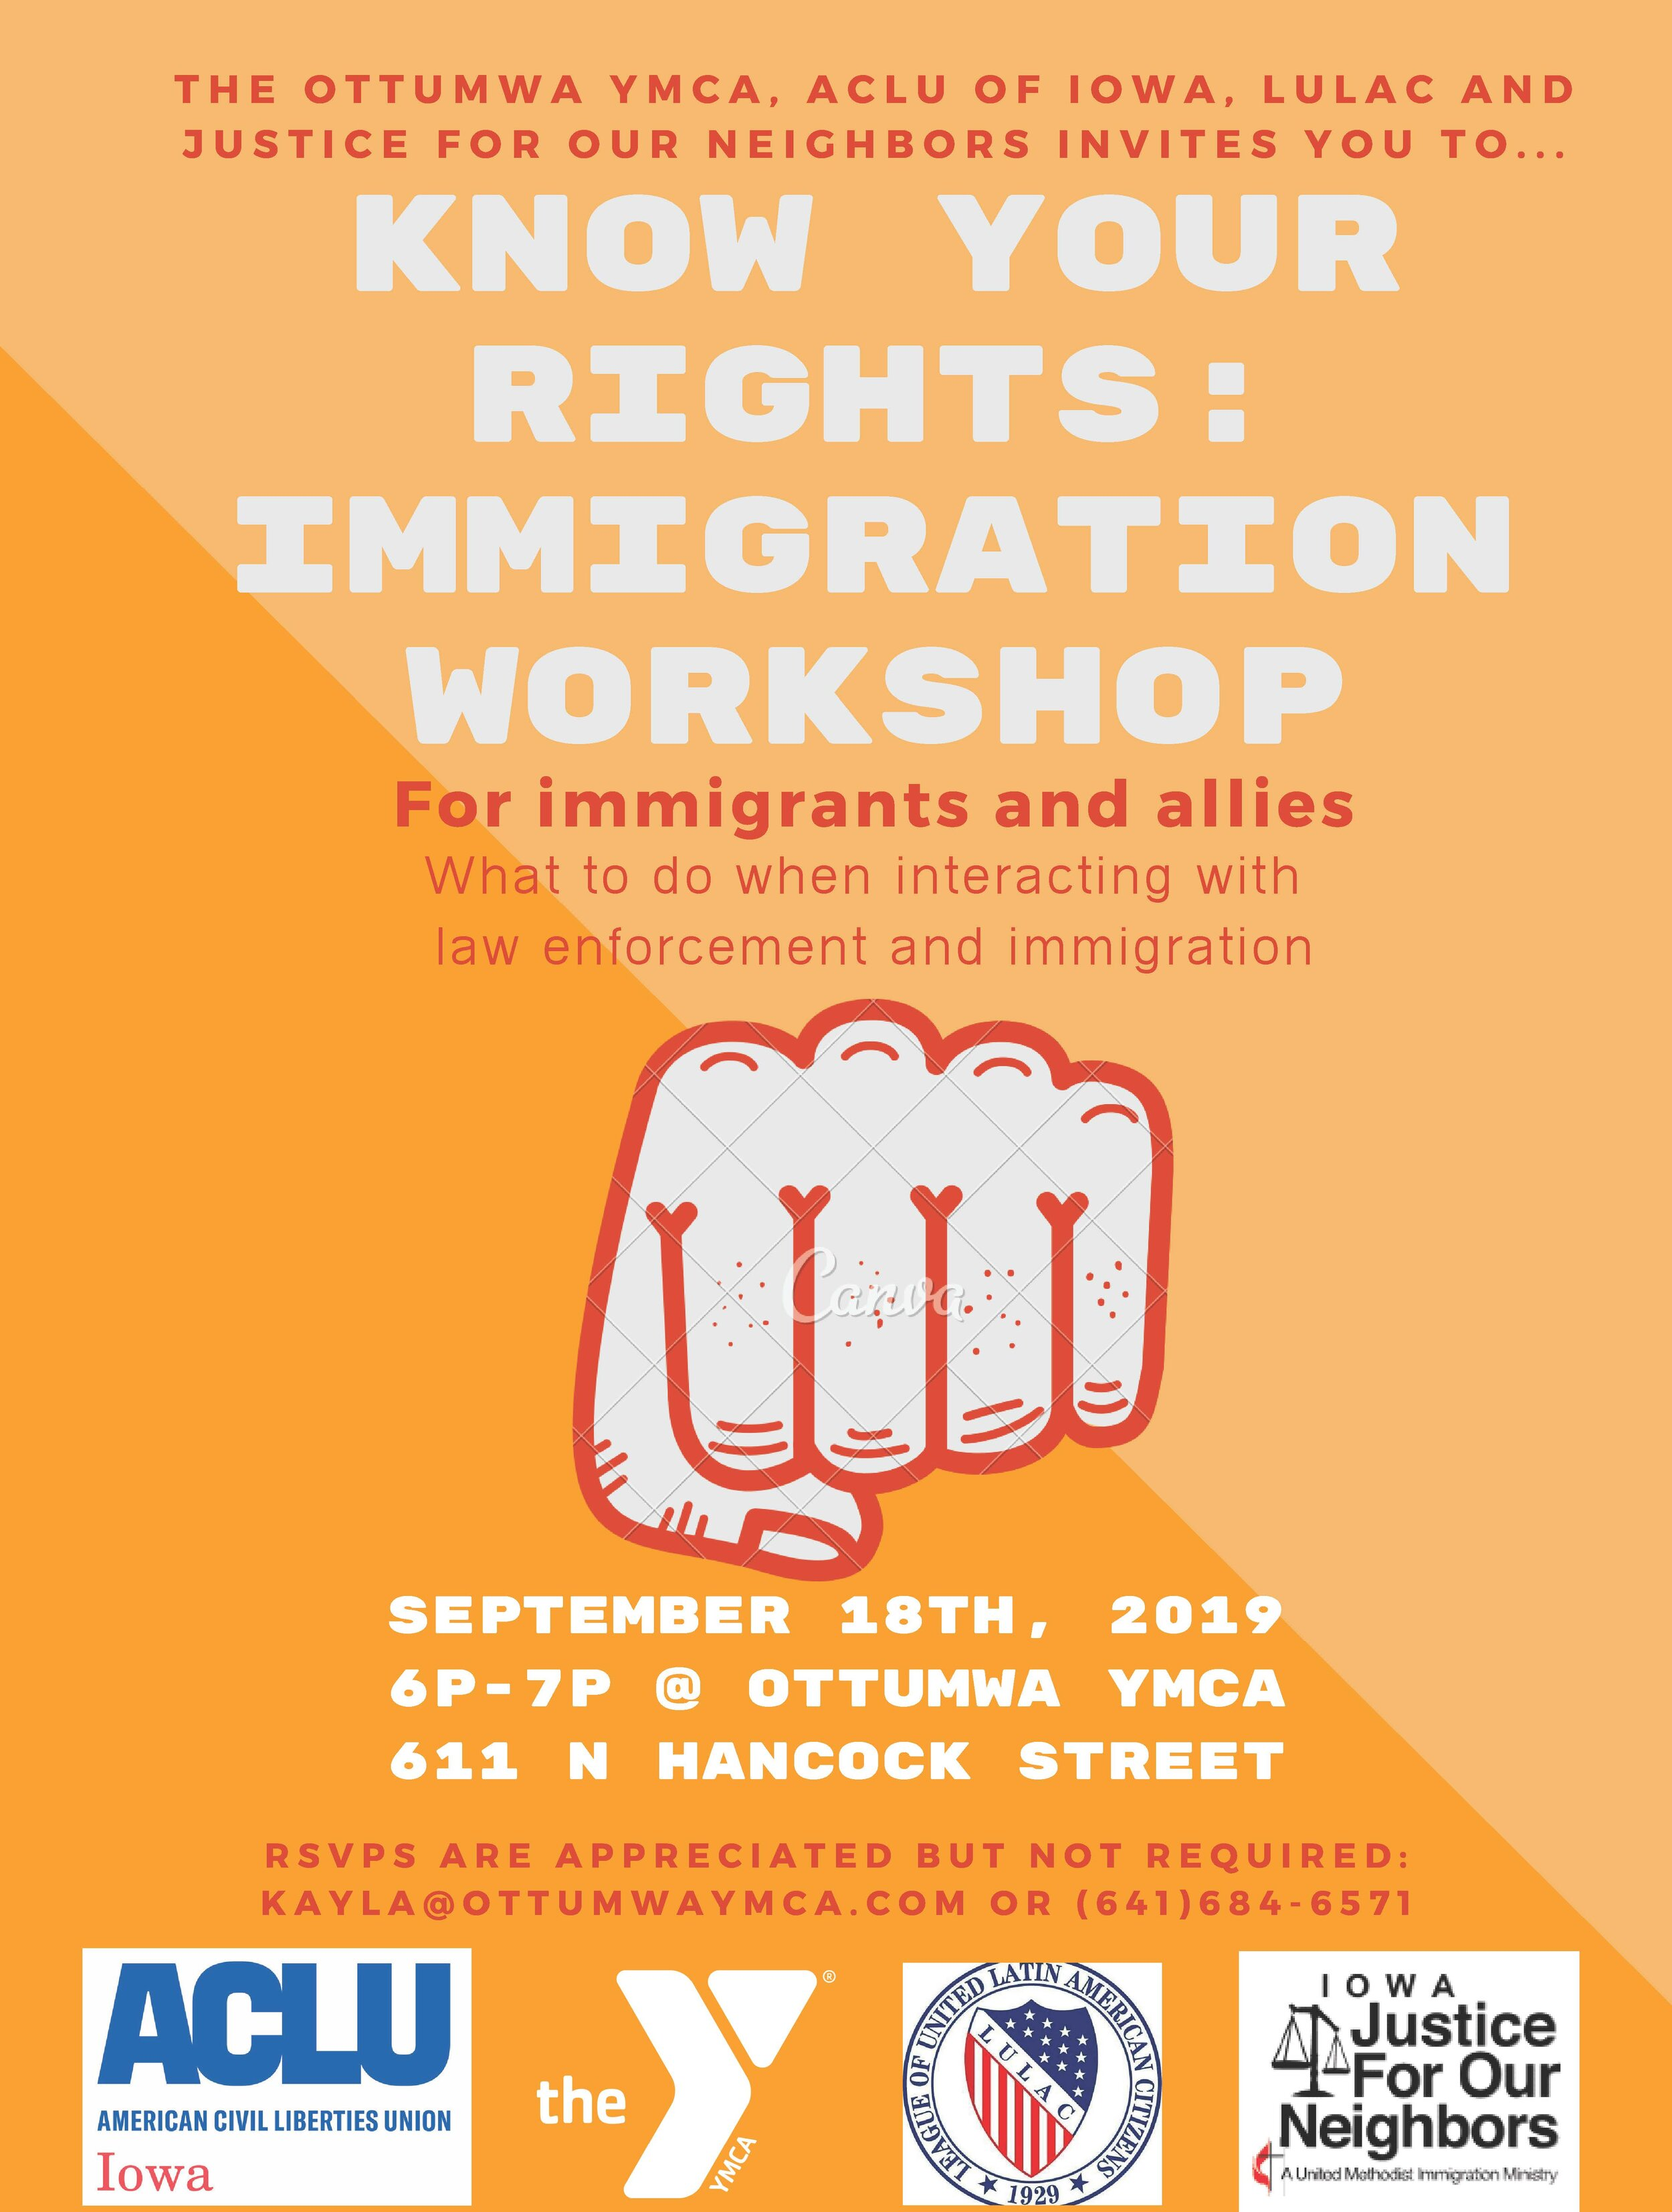 UPCOMING EVENT   Iowa Justice for Our Neighbors is teaming up with YMCA Ottumwa and ACLU of Iowa to present a Know Your Rights workshop at YMCA Ottumwa as part of their Welcoming Week Celebration. This workshop will take place Wednesday, September 18th from 6-7pm. Join us to learn about immigration rights, policies, and what you can do to support the cause. Refer to our Facebook page, Iowa Justice For Our Neighbors – JFON, for further updates on this upcoming workshop.